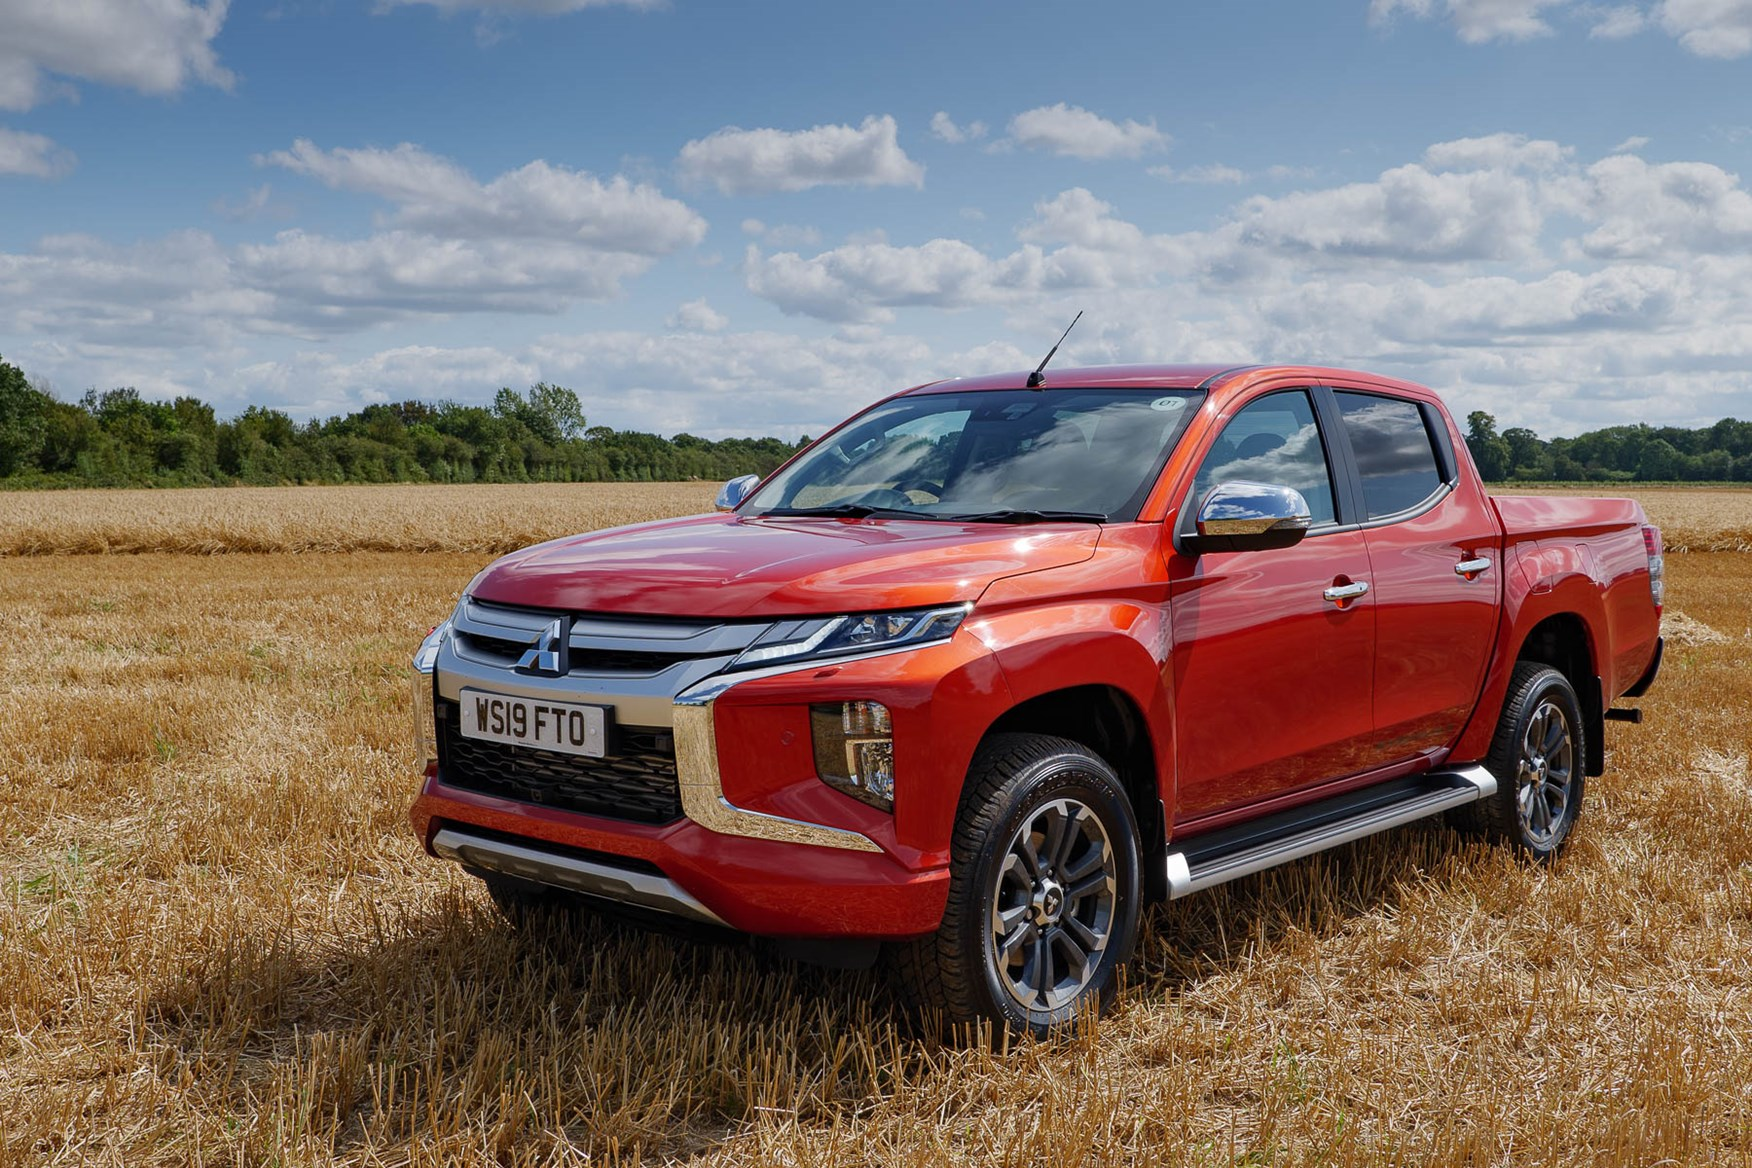 2019 Mitsubishi L200 Series 6, Barbarian X in Sunflare Orange